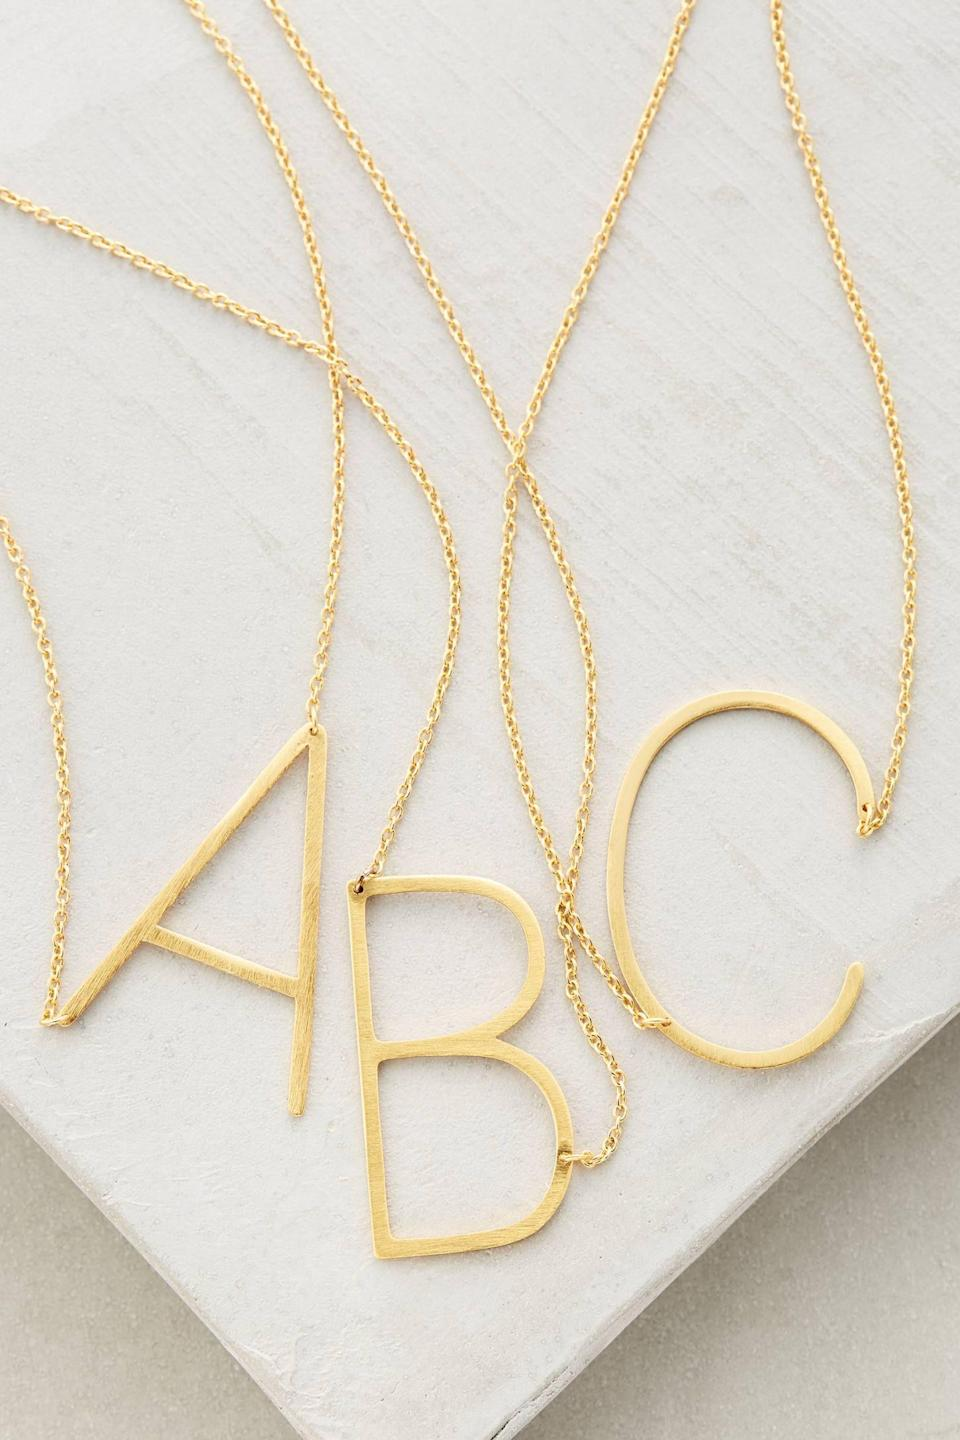 """<p><strong>Anthropologie</strong></p><p>anthropologie.com</p><p><strong>$38.00</strong></p><p><a href=""""https://go.redirectingat.com?id=74968X1596630&url=https%3A%2F%2Fwww.anthropologie.com%2Fshop%2Fblock-letter-monogram-necklace%3Fcolor%3D901%26type%3DSTANDARD%26size%3DOne%2BSize%26quantity%3D1&sref=https%3A%2F%2Fwww.countryliving.com%2Fshopping%2Fgifts%2Fg1416%2Fvalentines-day-gifts%2F"""" rel=""""nofollow noopener"""" target=""""_blank"""" data-ylk=""""slk:Shop Now"""" class=""""link rapid-noclick-resp"""">Shop Now</a></p><p>These trendy monogram necklaces will be sure to be a hit! </p>"""